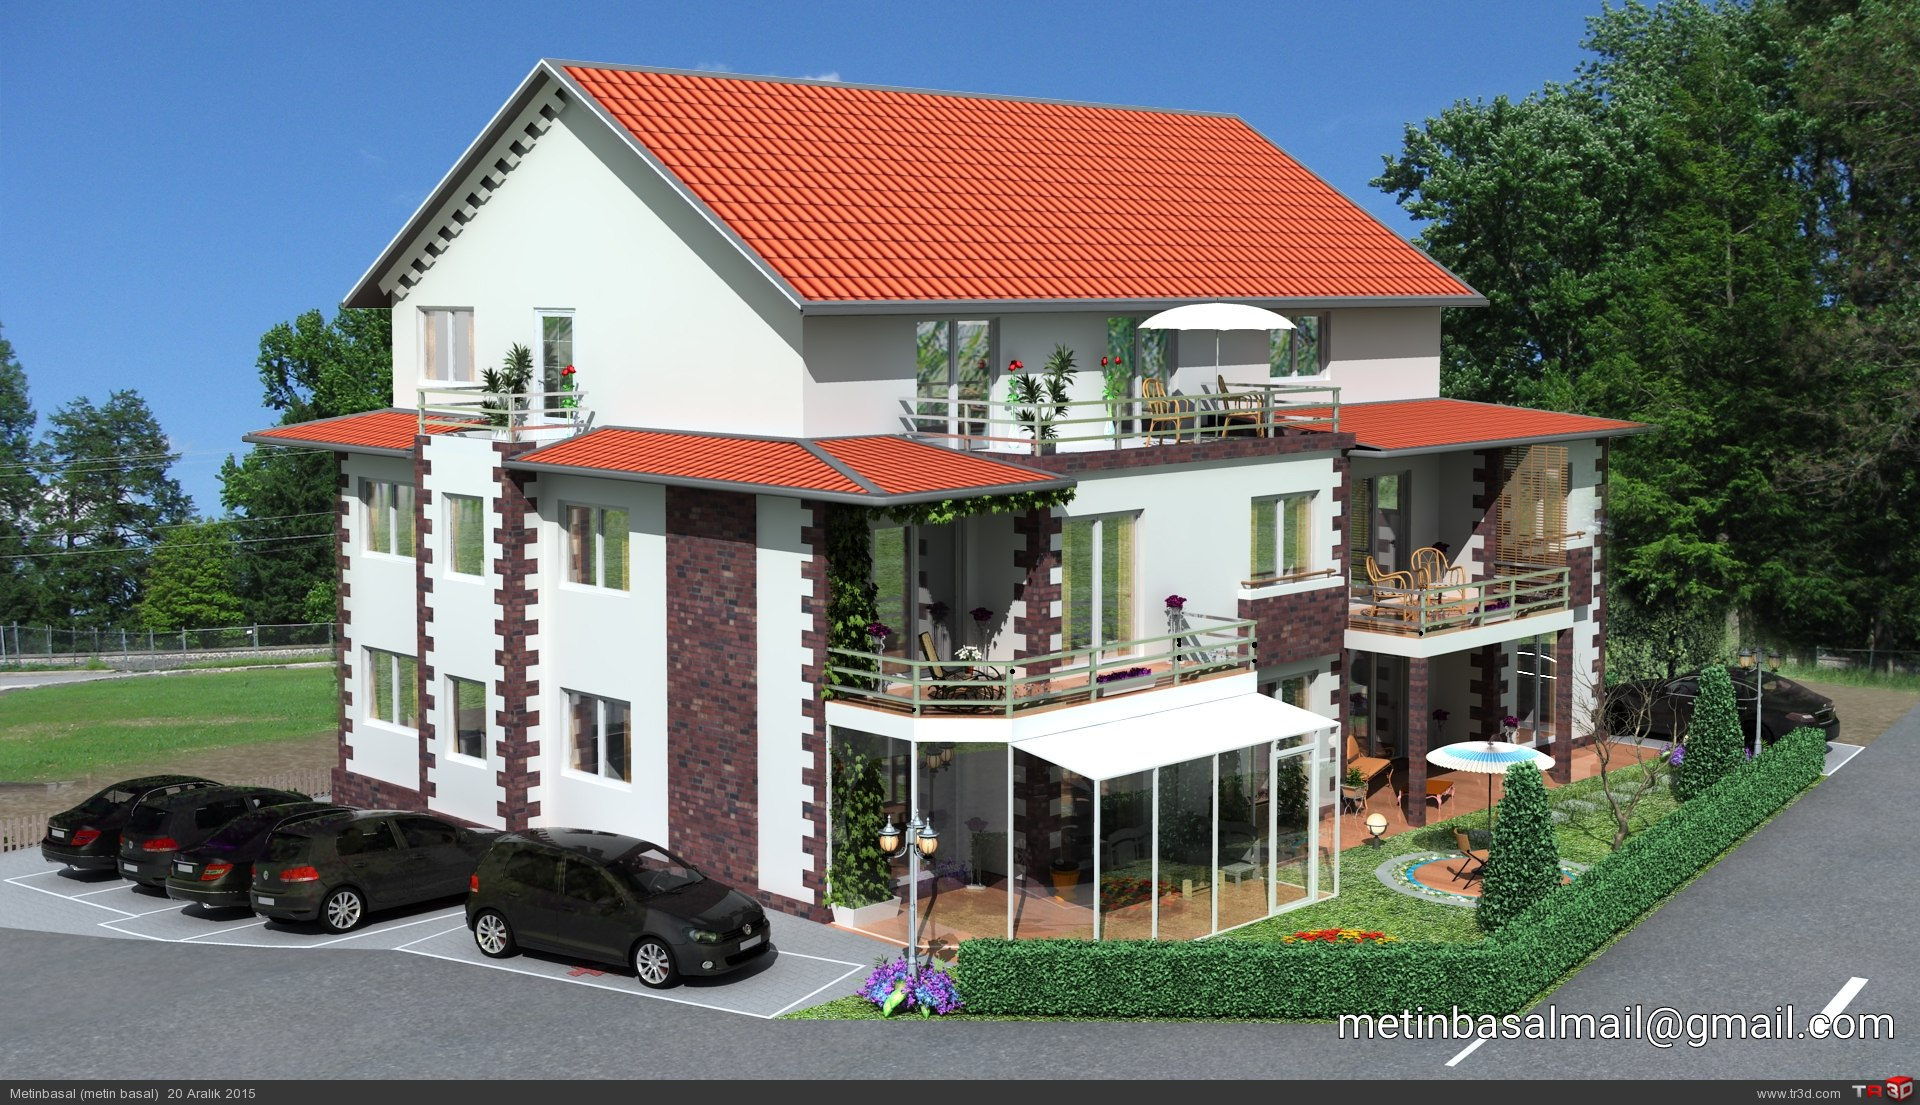 Germany villa modeling and design